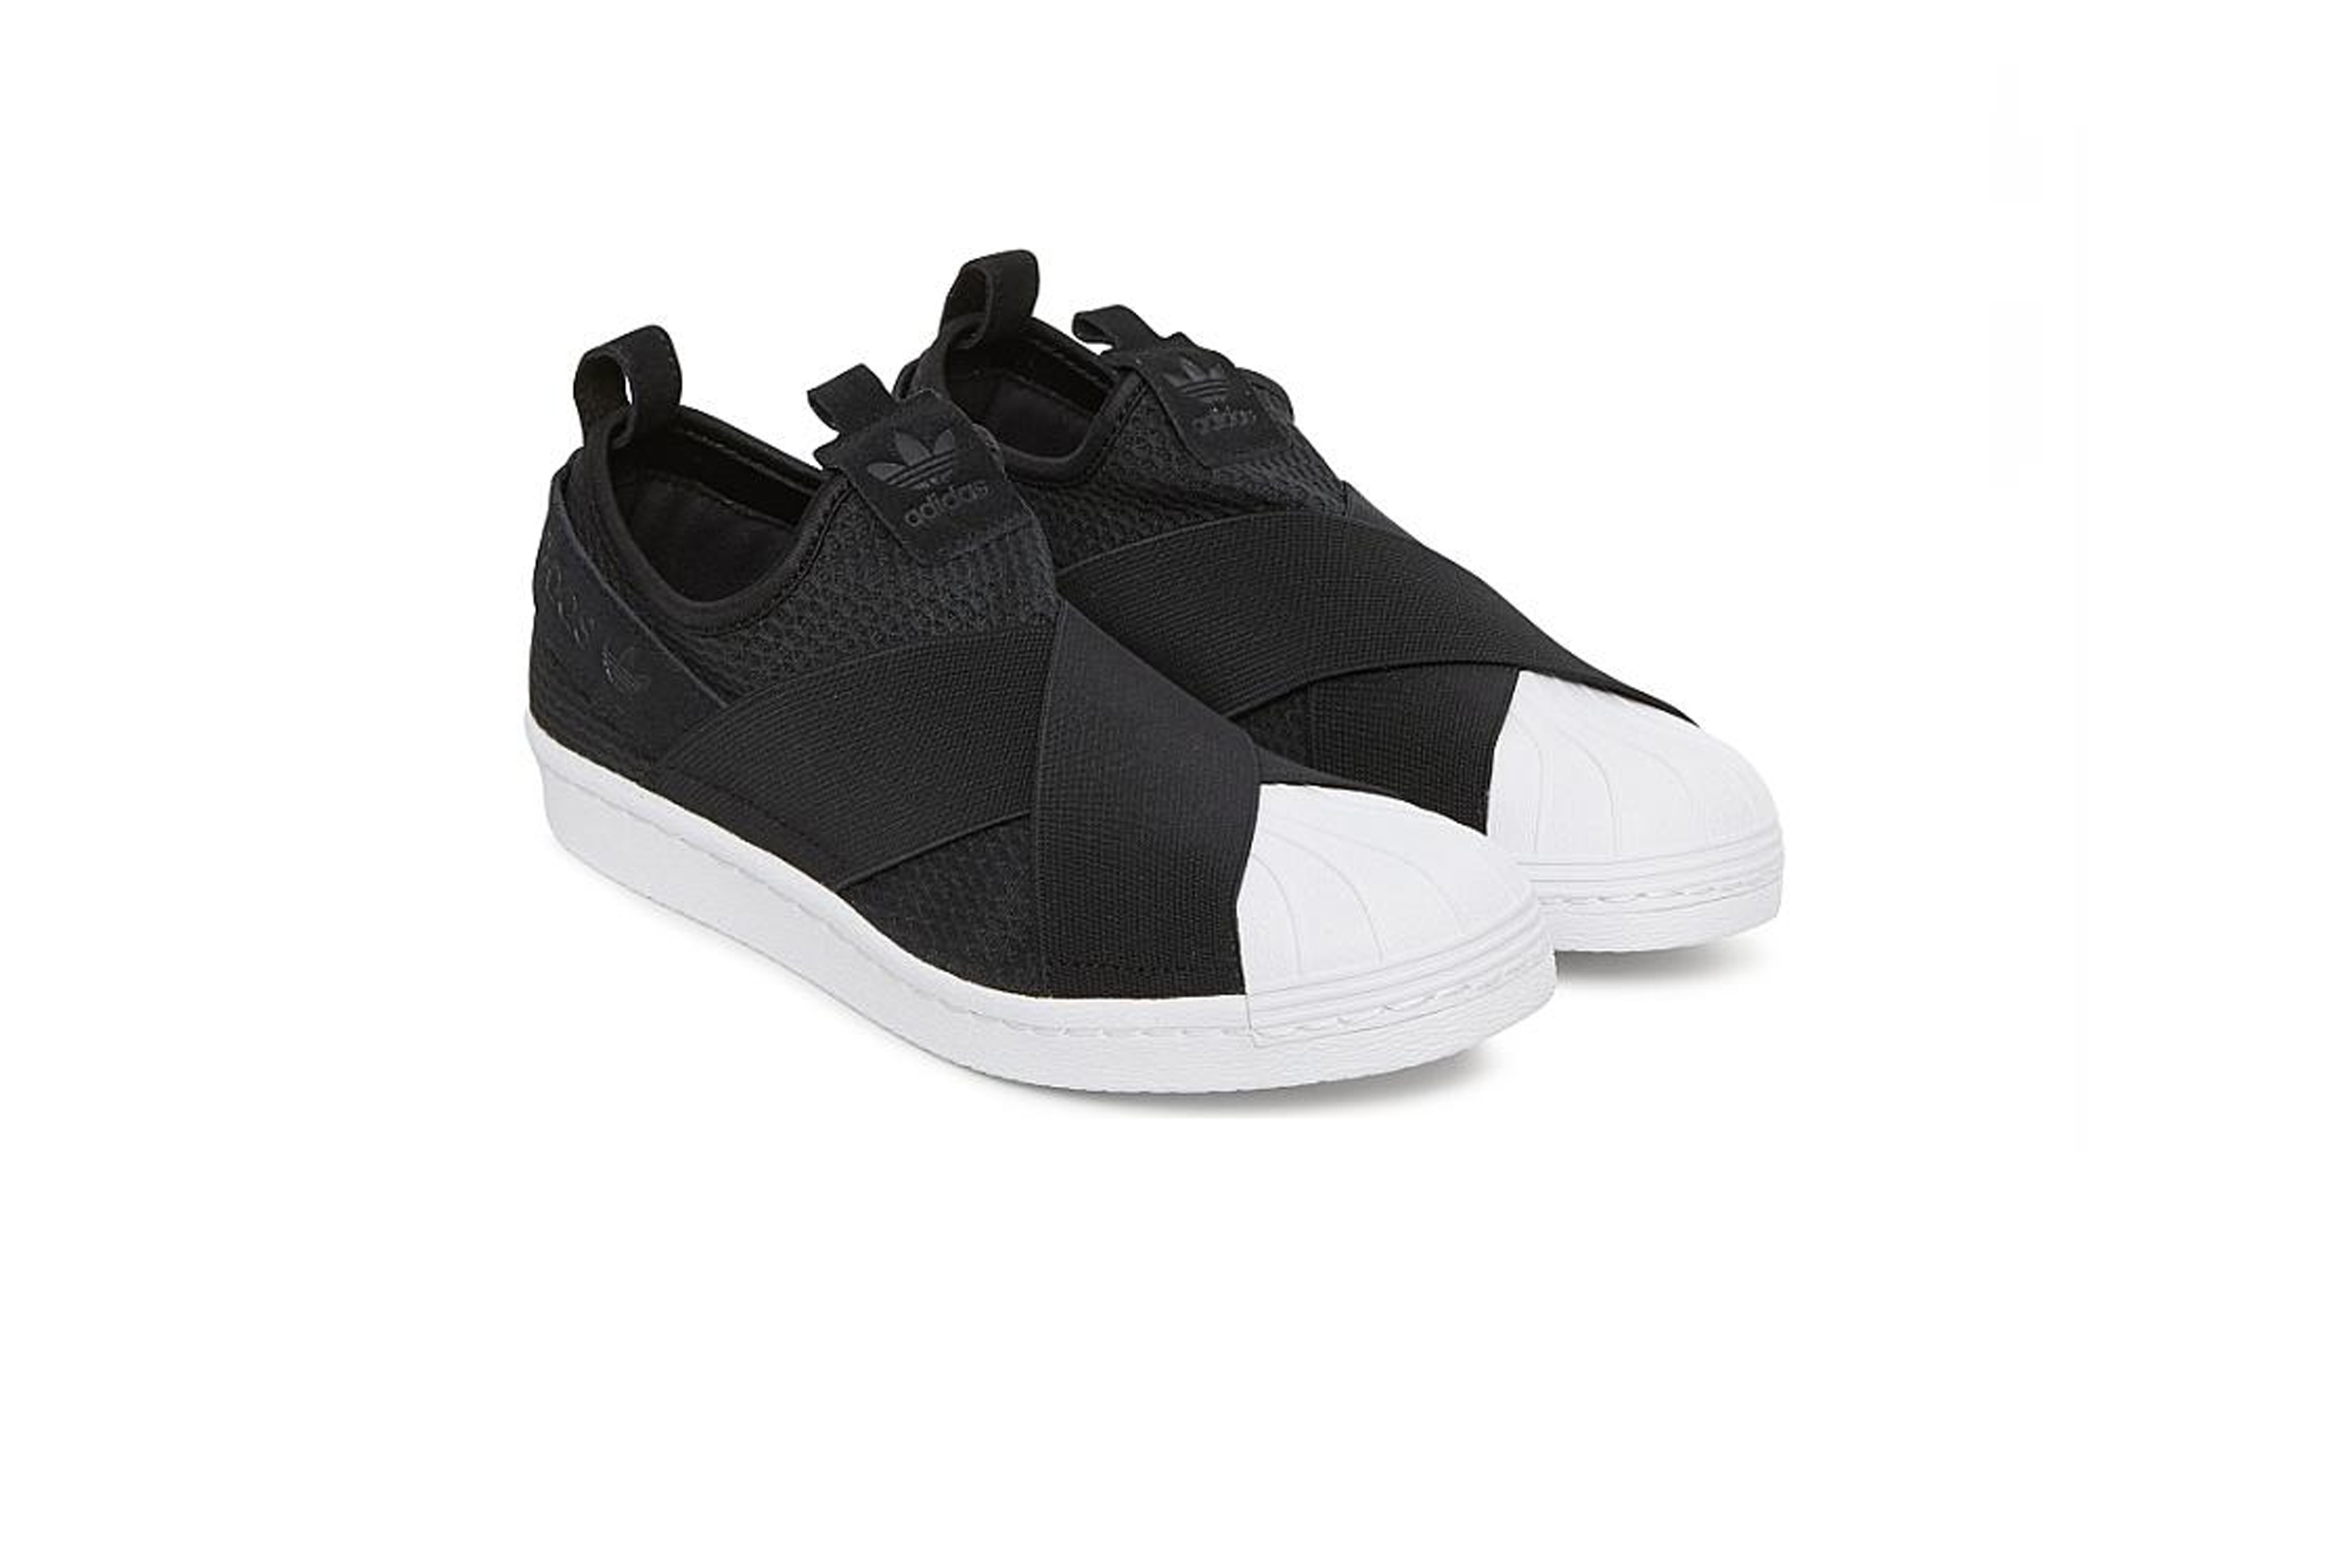 new styles 380f7 3e0a9 adidas Originals Superstar Slip-On Shoes Womens B37193 Core Black / Core  Black / FTWR White